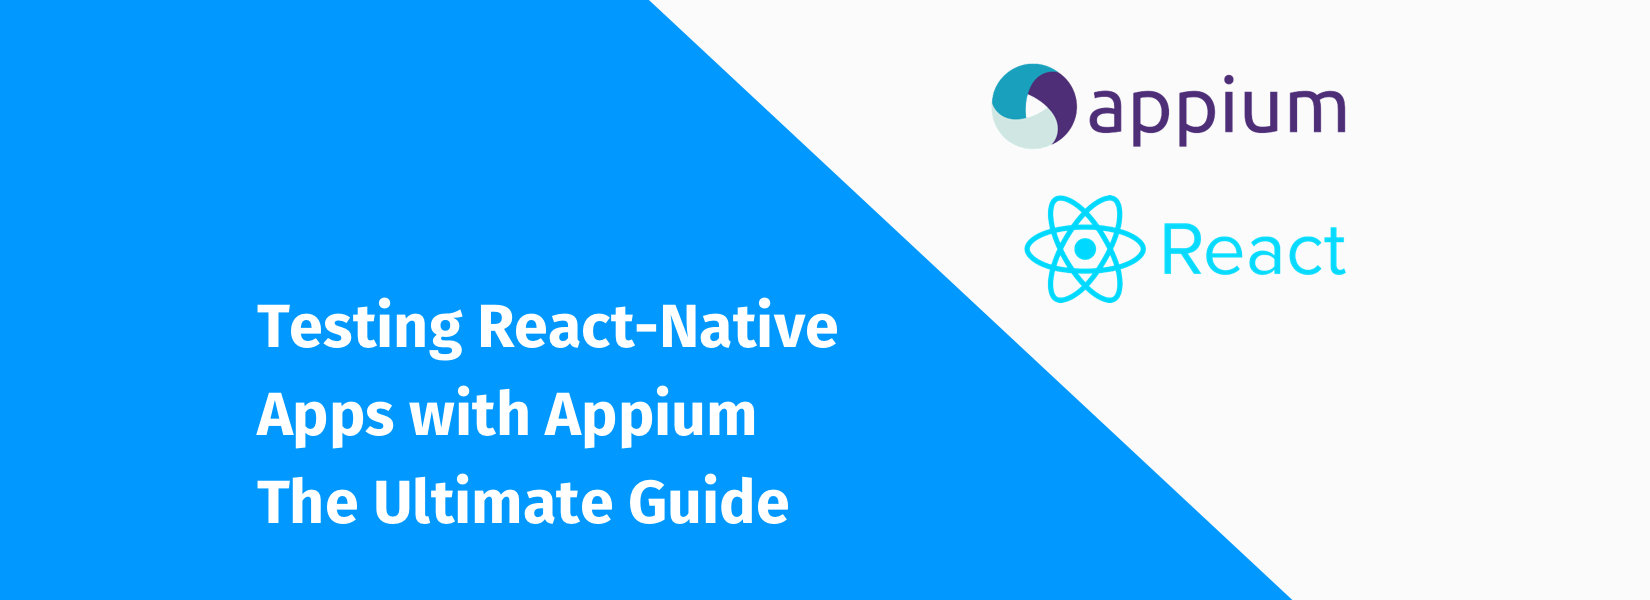 Testing React-Native Apps with Appium - The Ultimate Guide